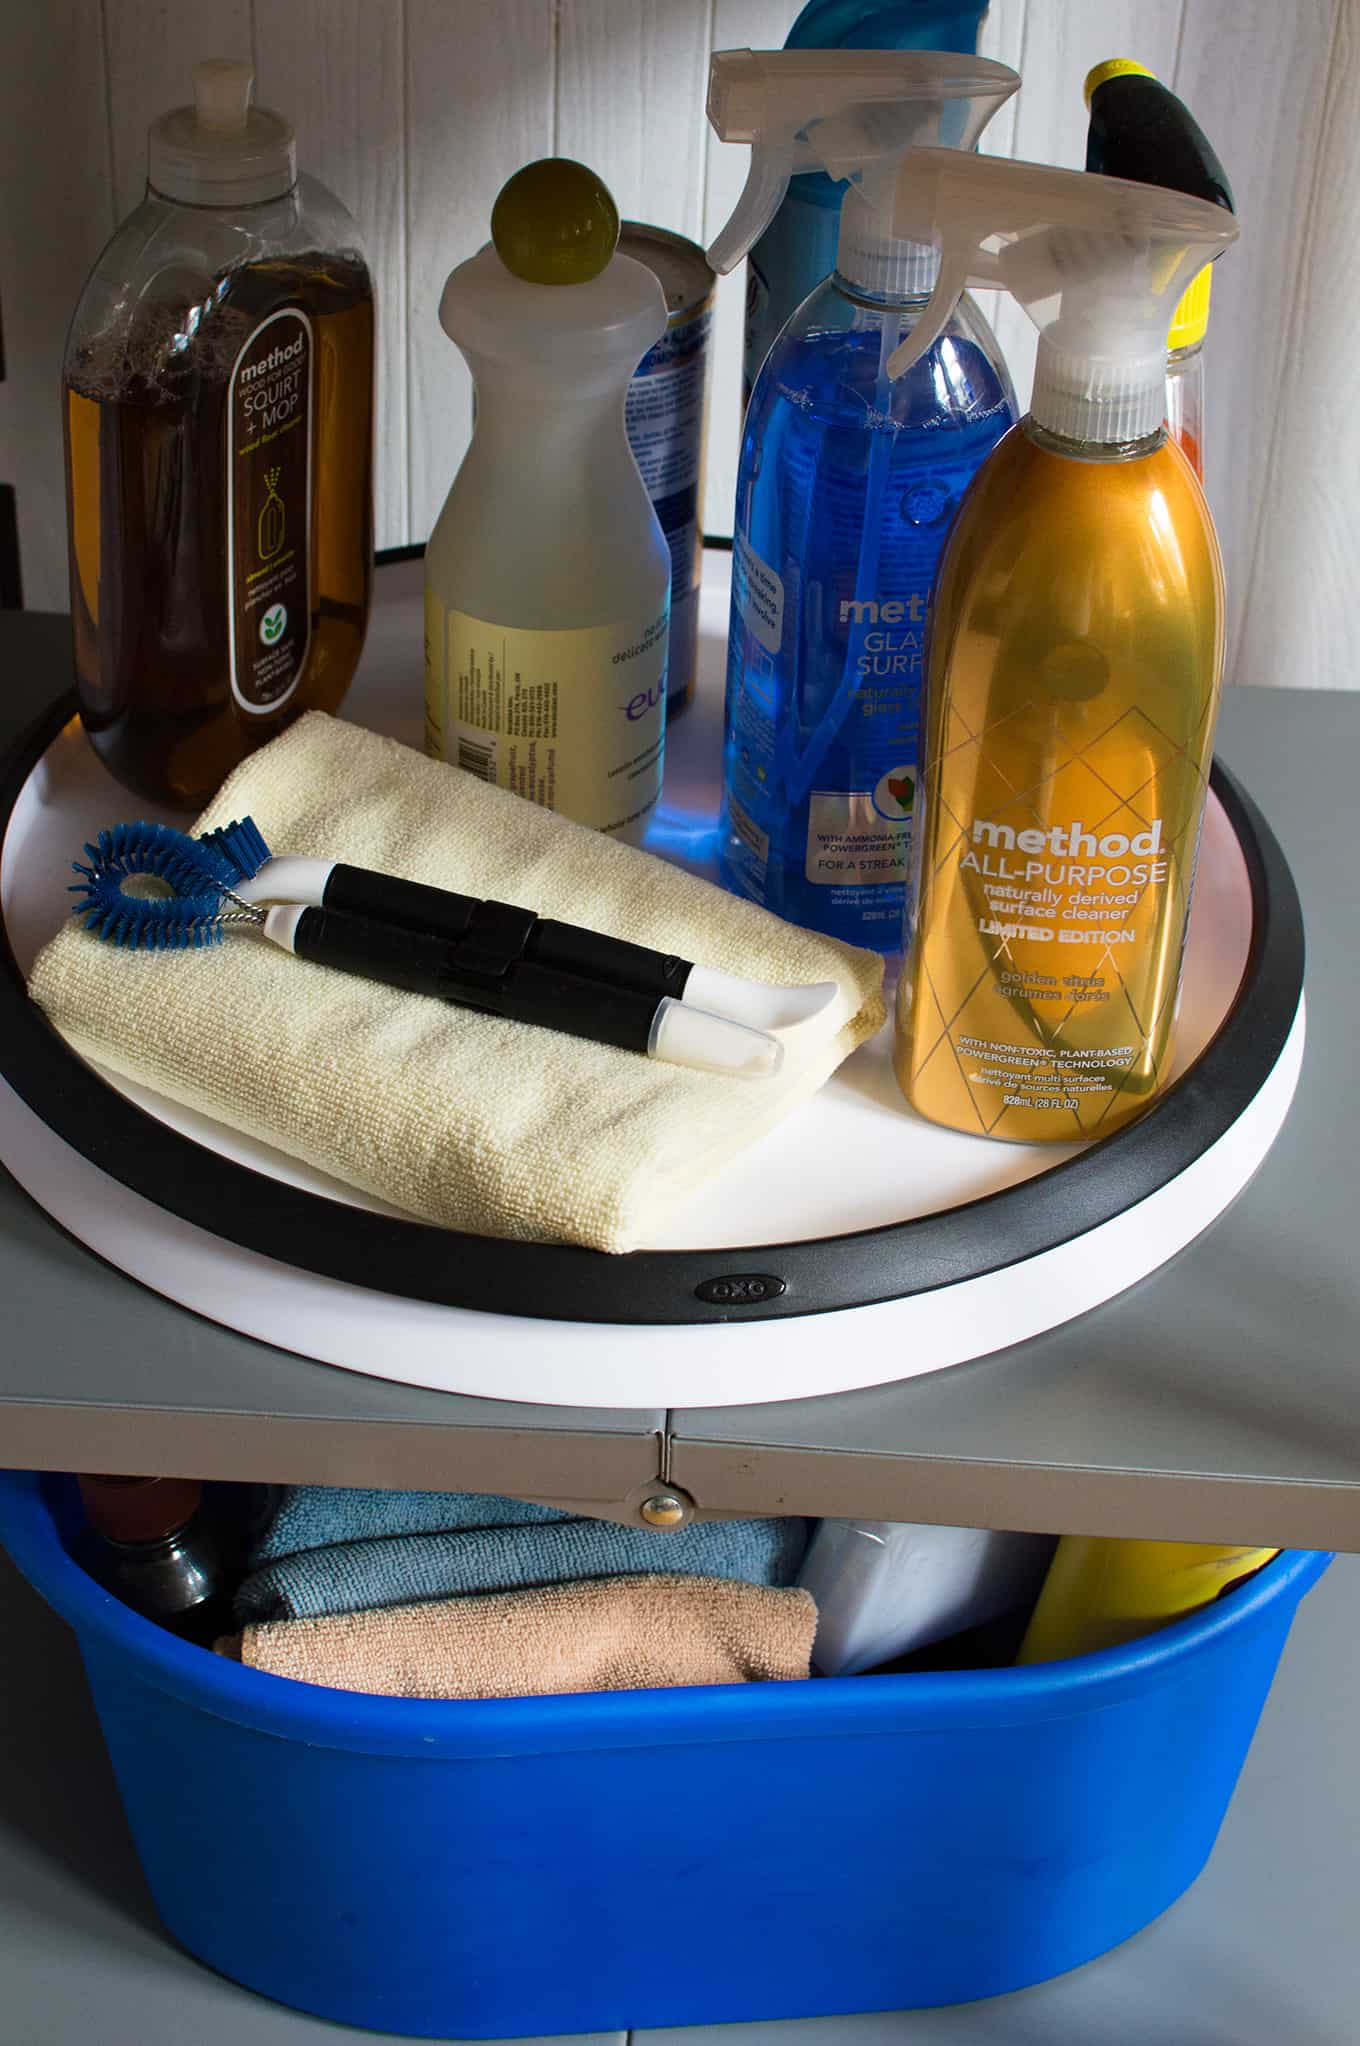 Assorted cleaning supplies and towel on a rotating tray.